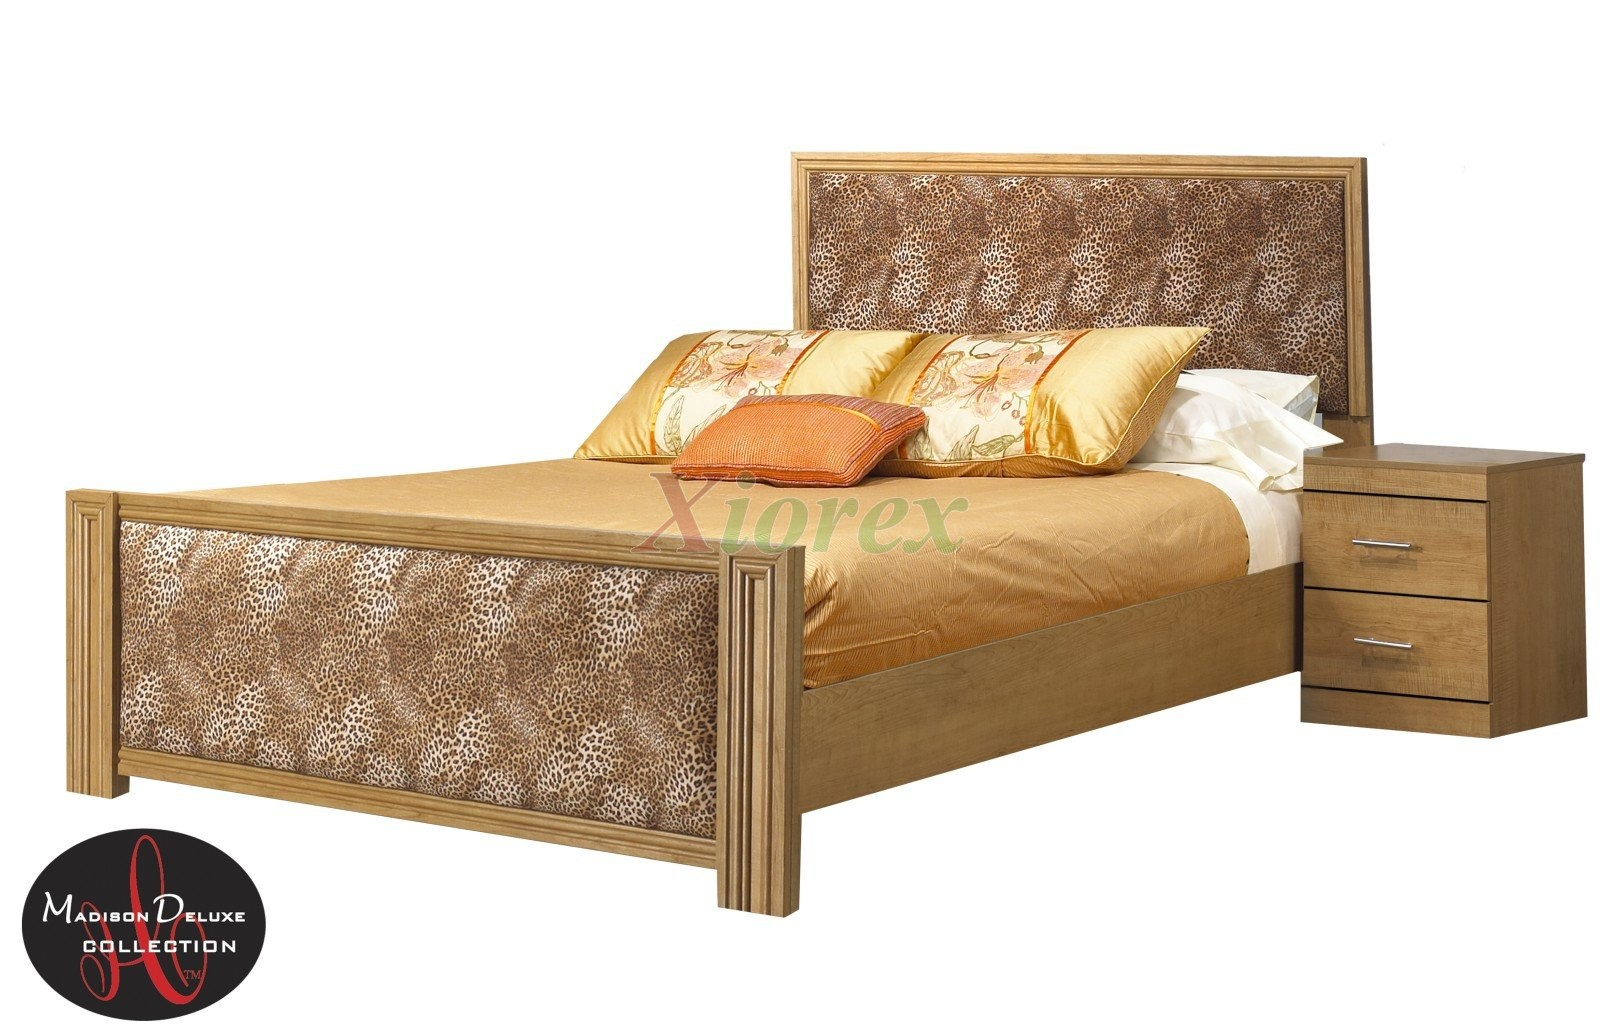 Bed Frames Life Line Madison Twin Full Queen King Bed Sets | Xiorex